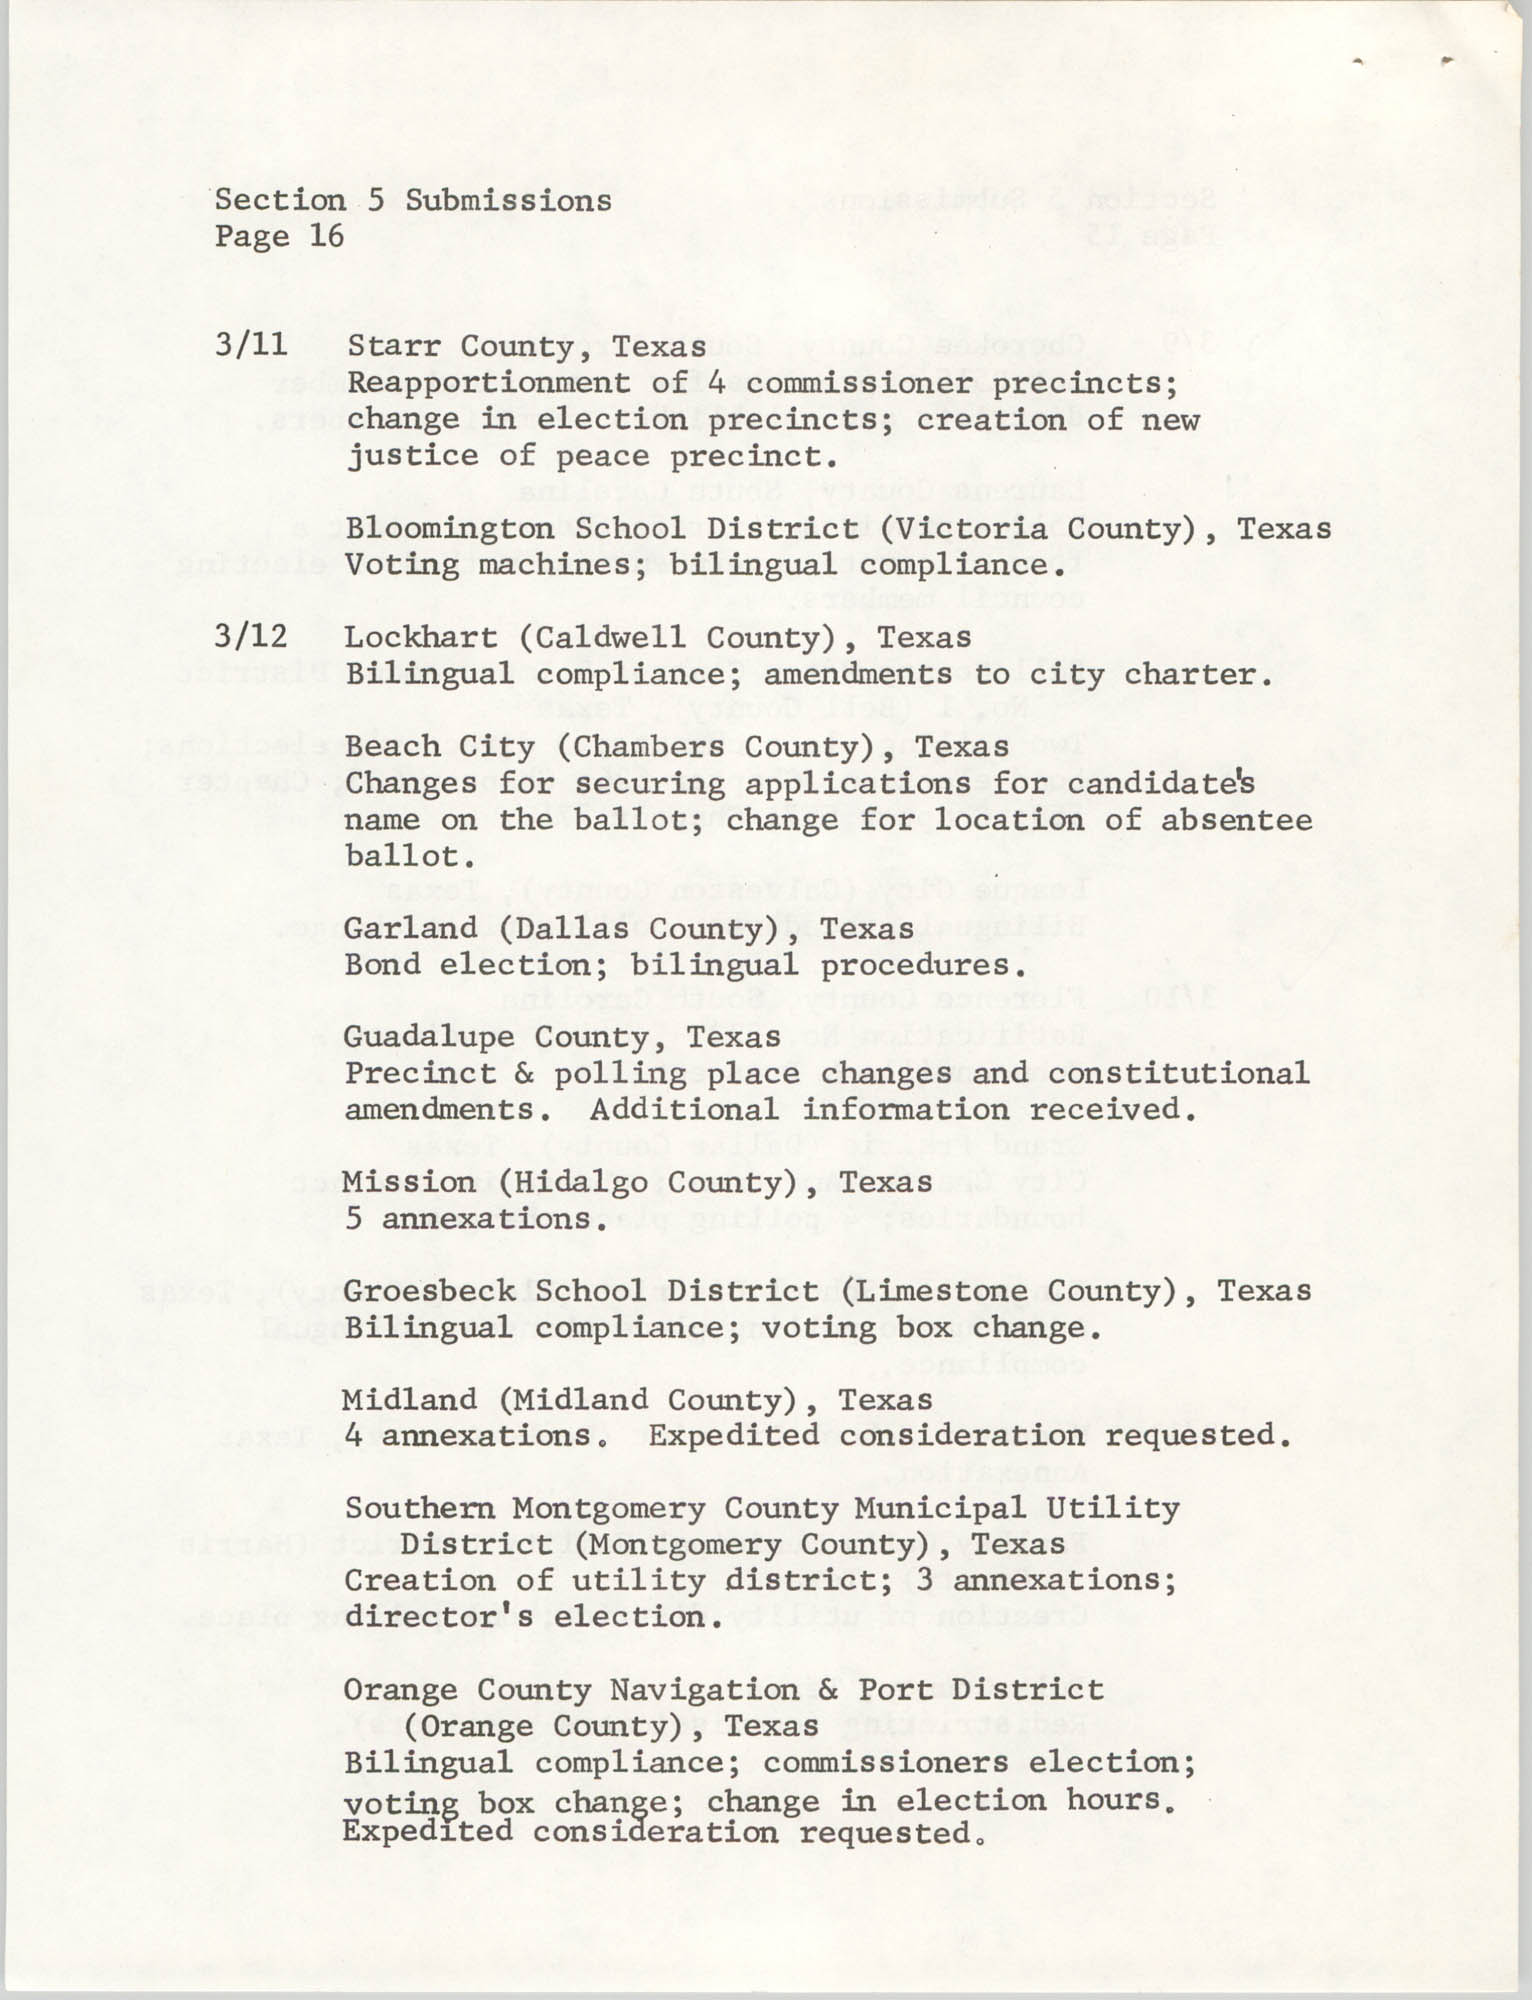 United States Department of Justice Notice, March 26, 1976, Page 16